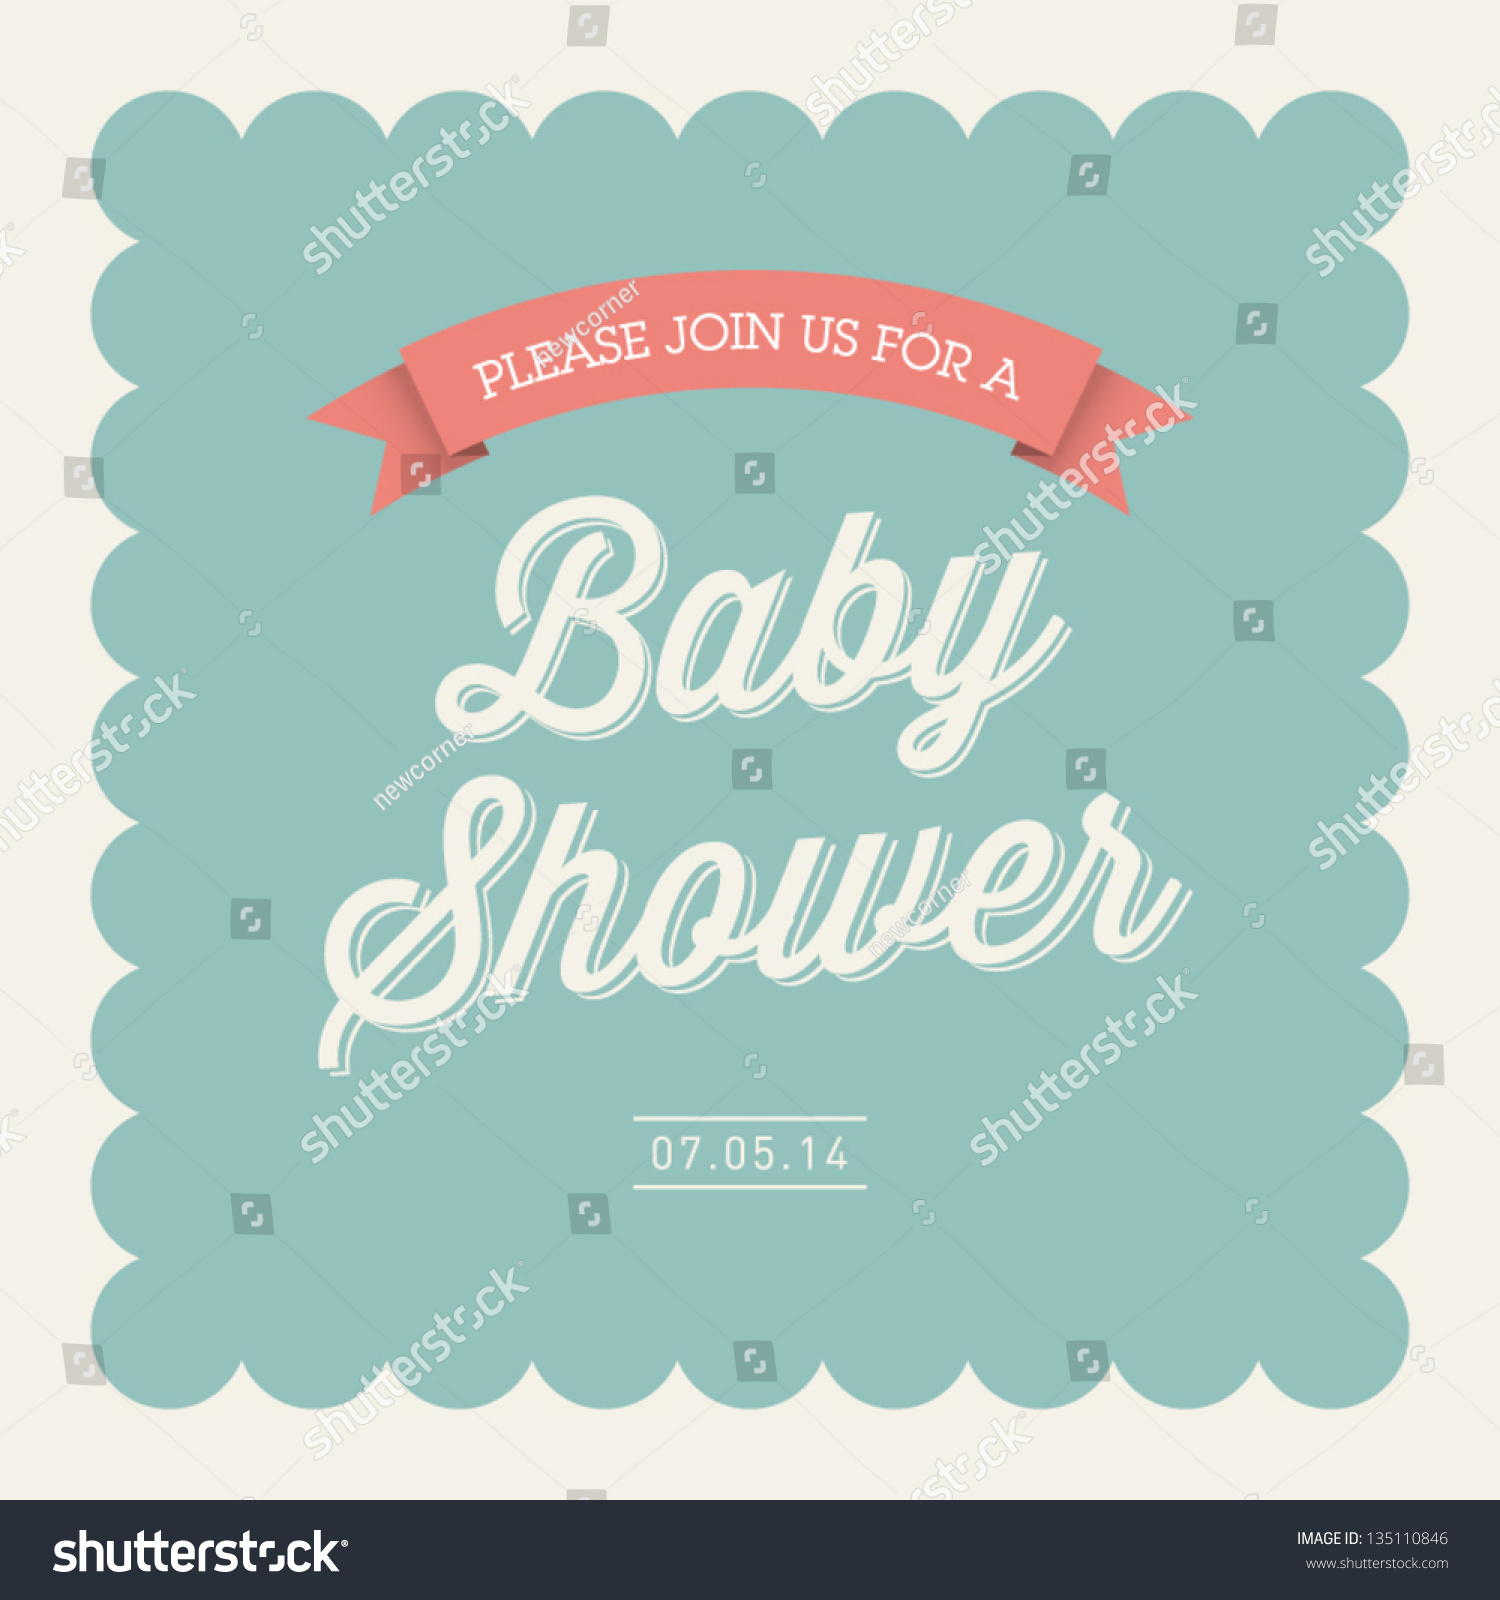 baby shower invitation card editable with type font ribbon frame border vintage